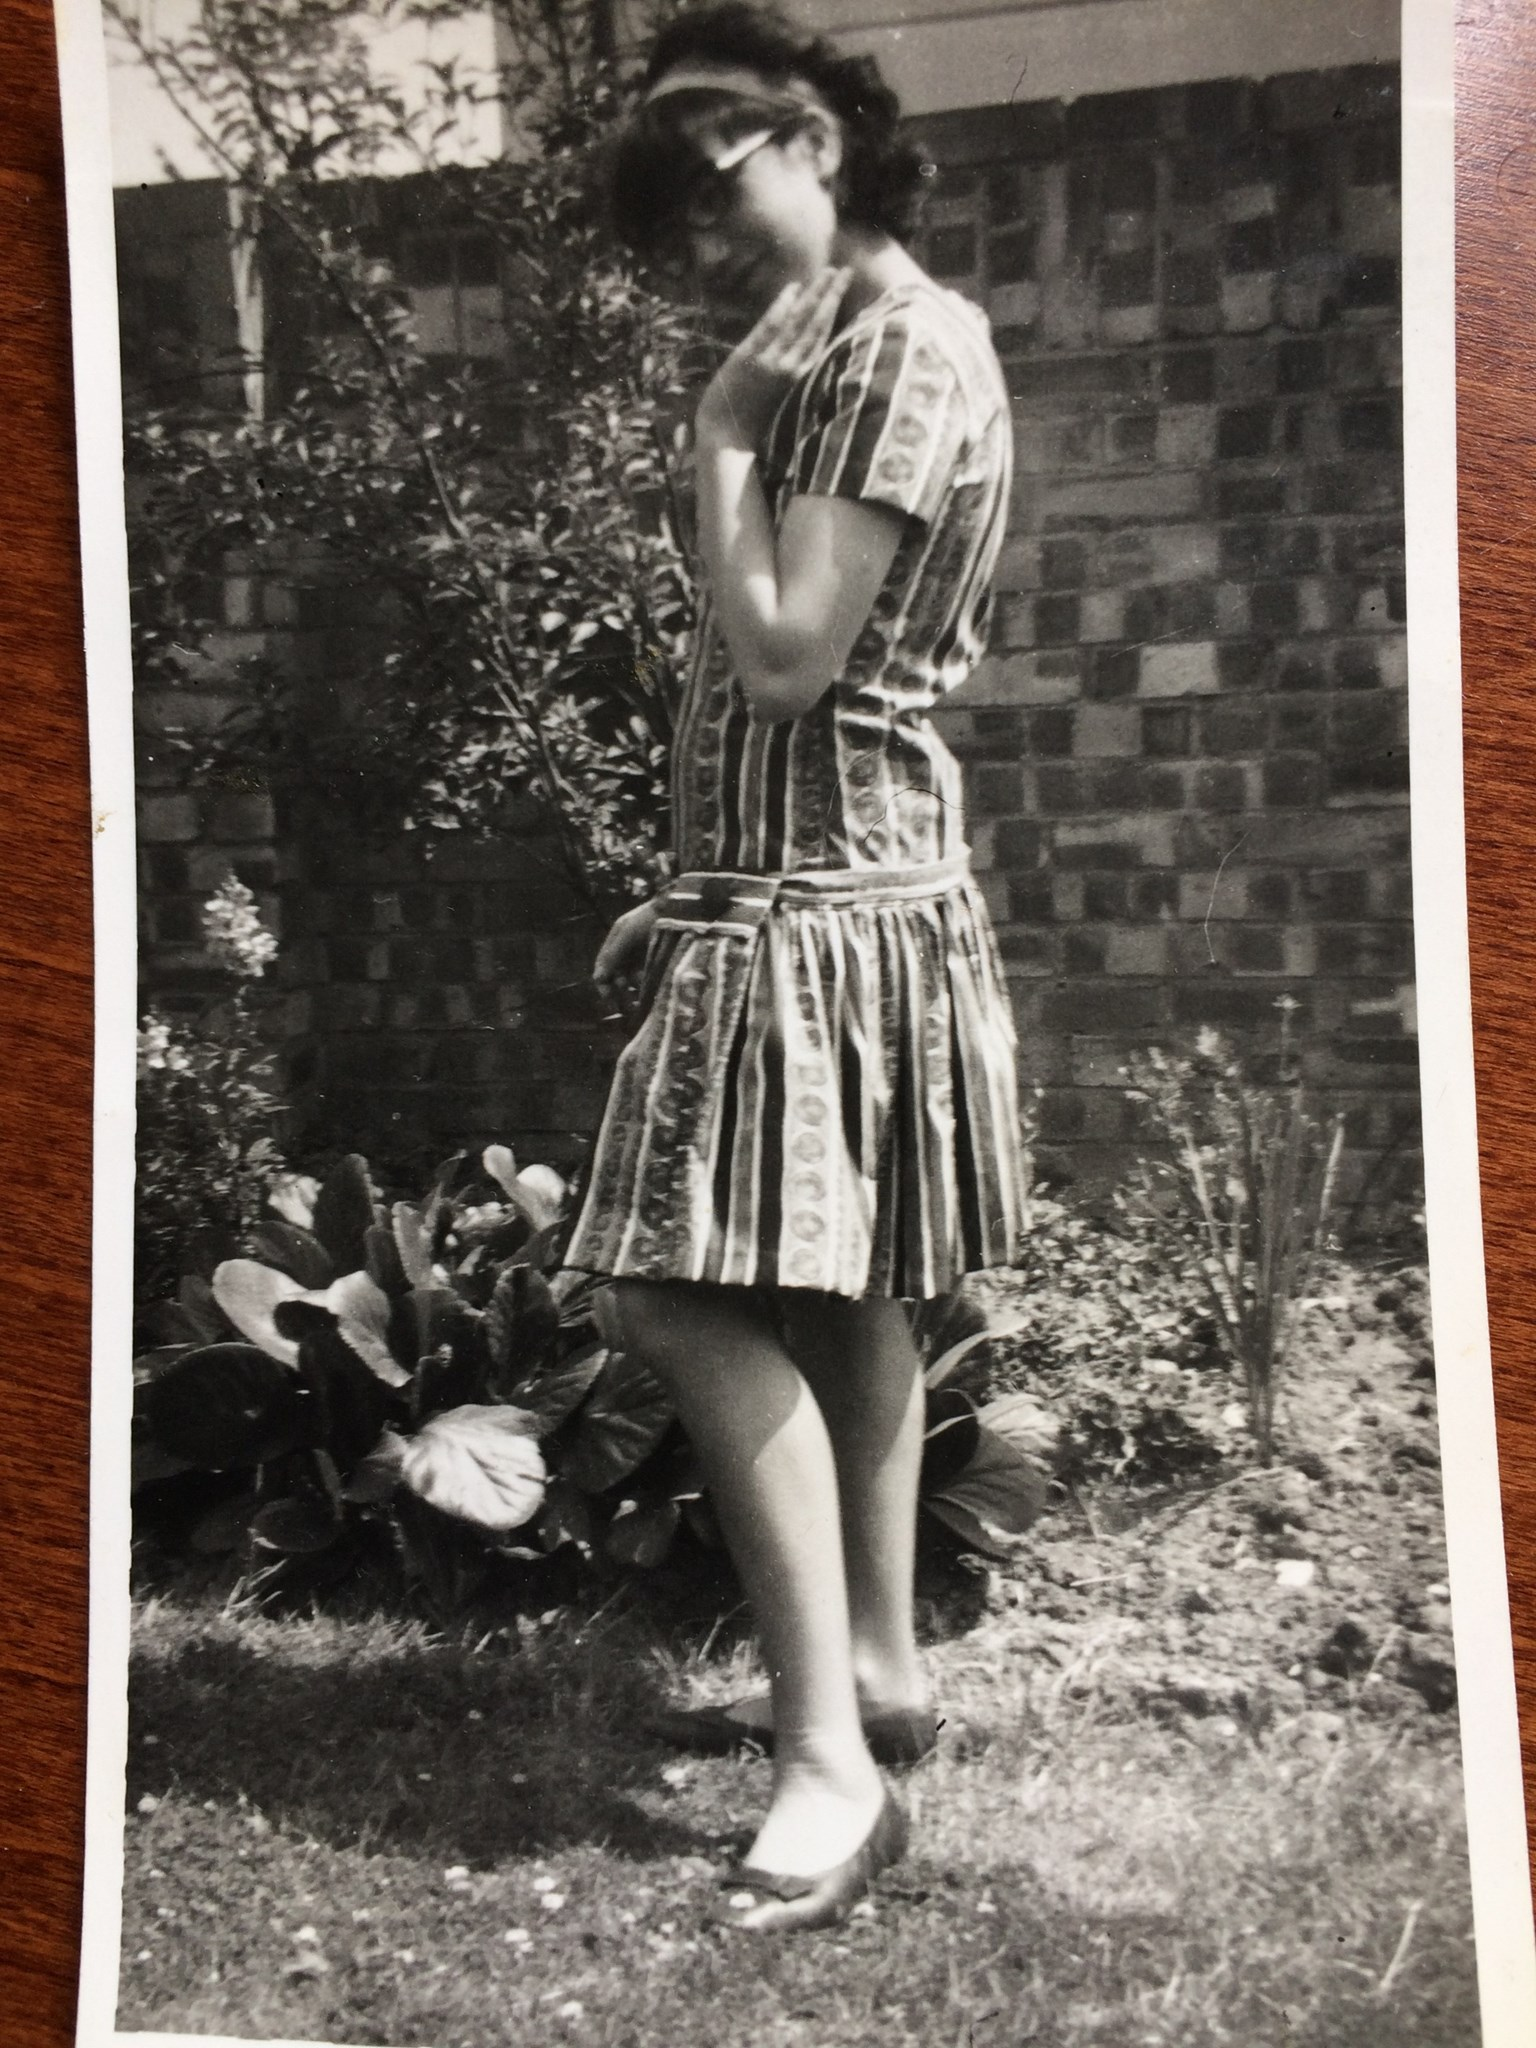 Helen - about 1962